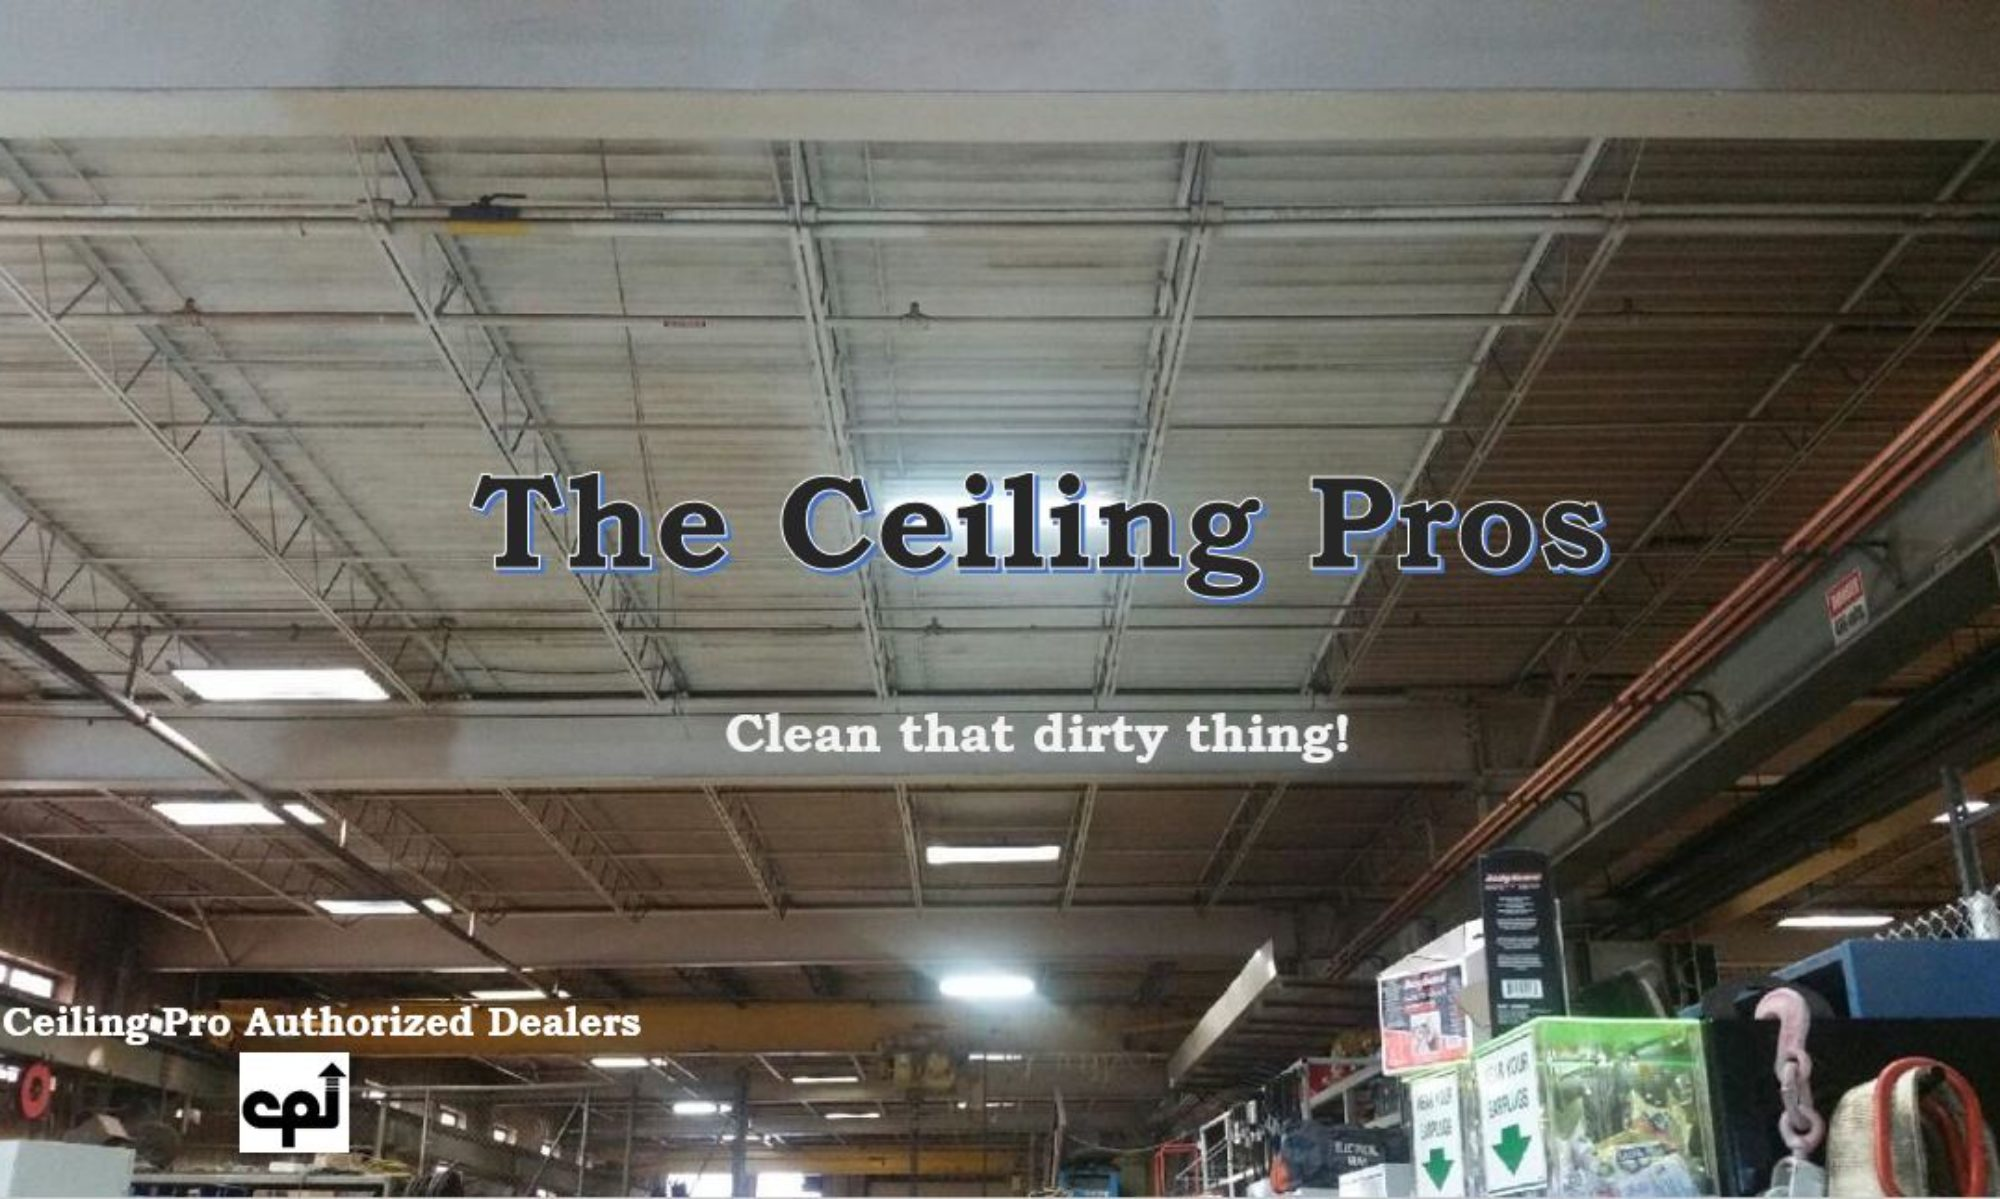 The Ceiling Pros